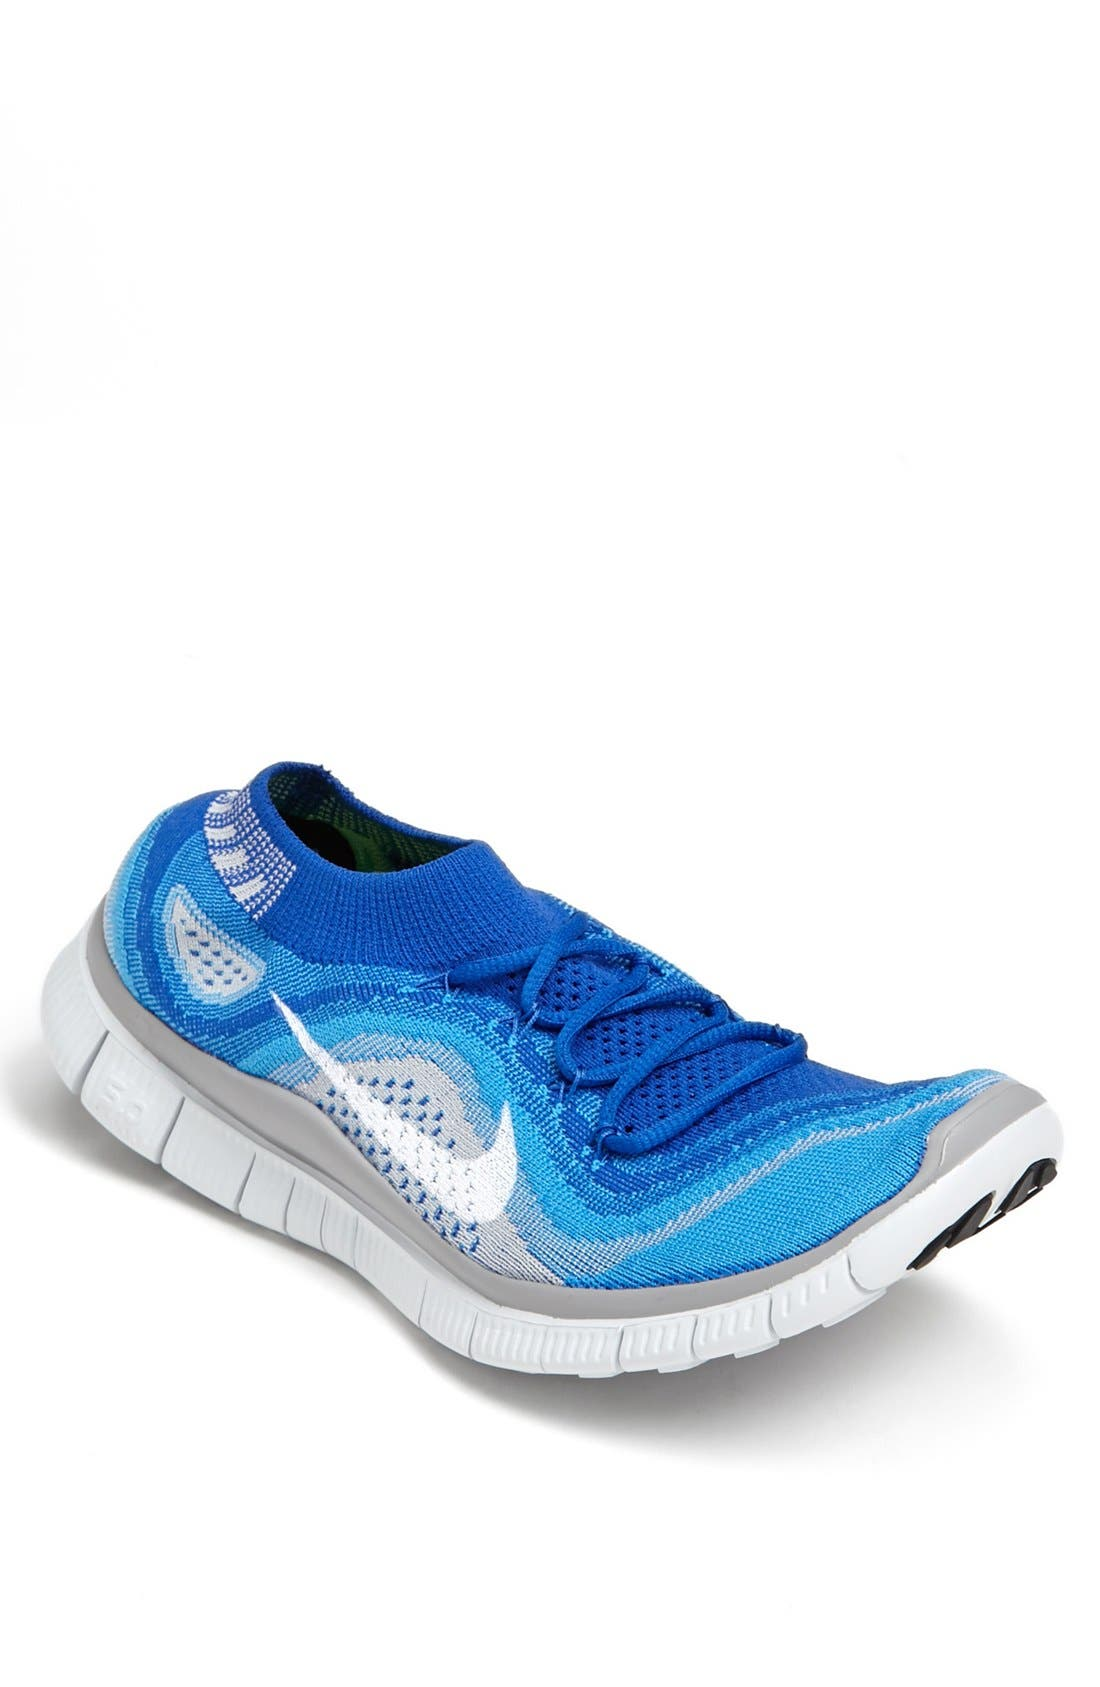 Alternate Image 1 Selected - Nike 'Free Flyknit+' Running Shoe (Men)